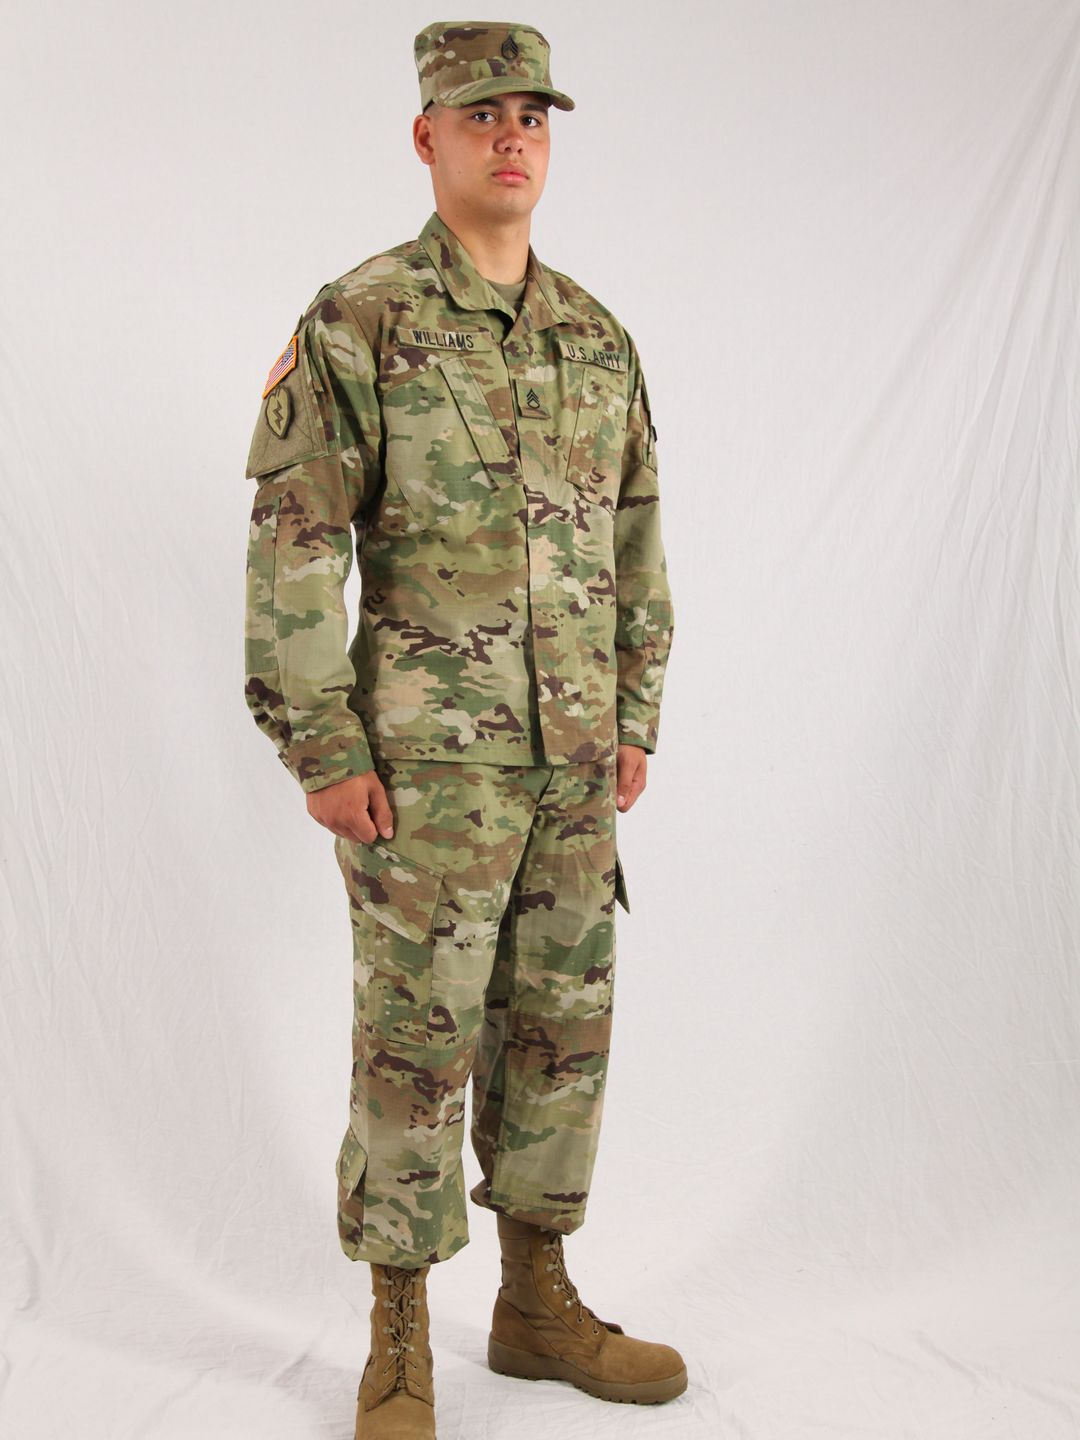 Army Combat Uniform - Wikipedia - photo#1